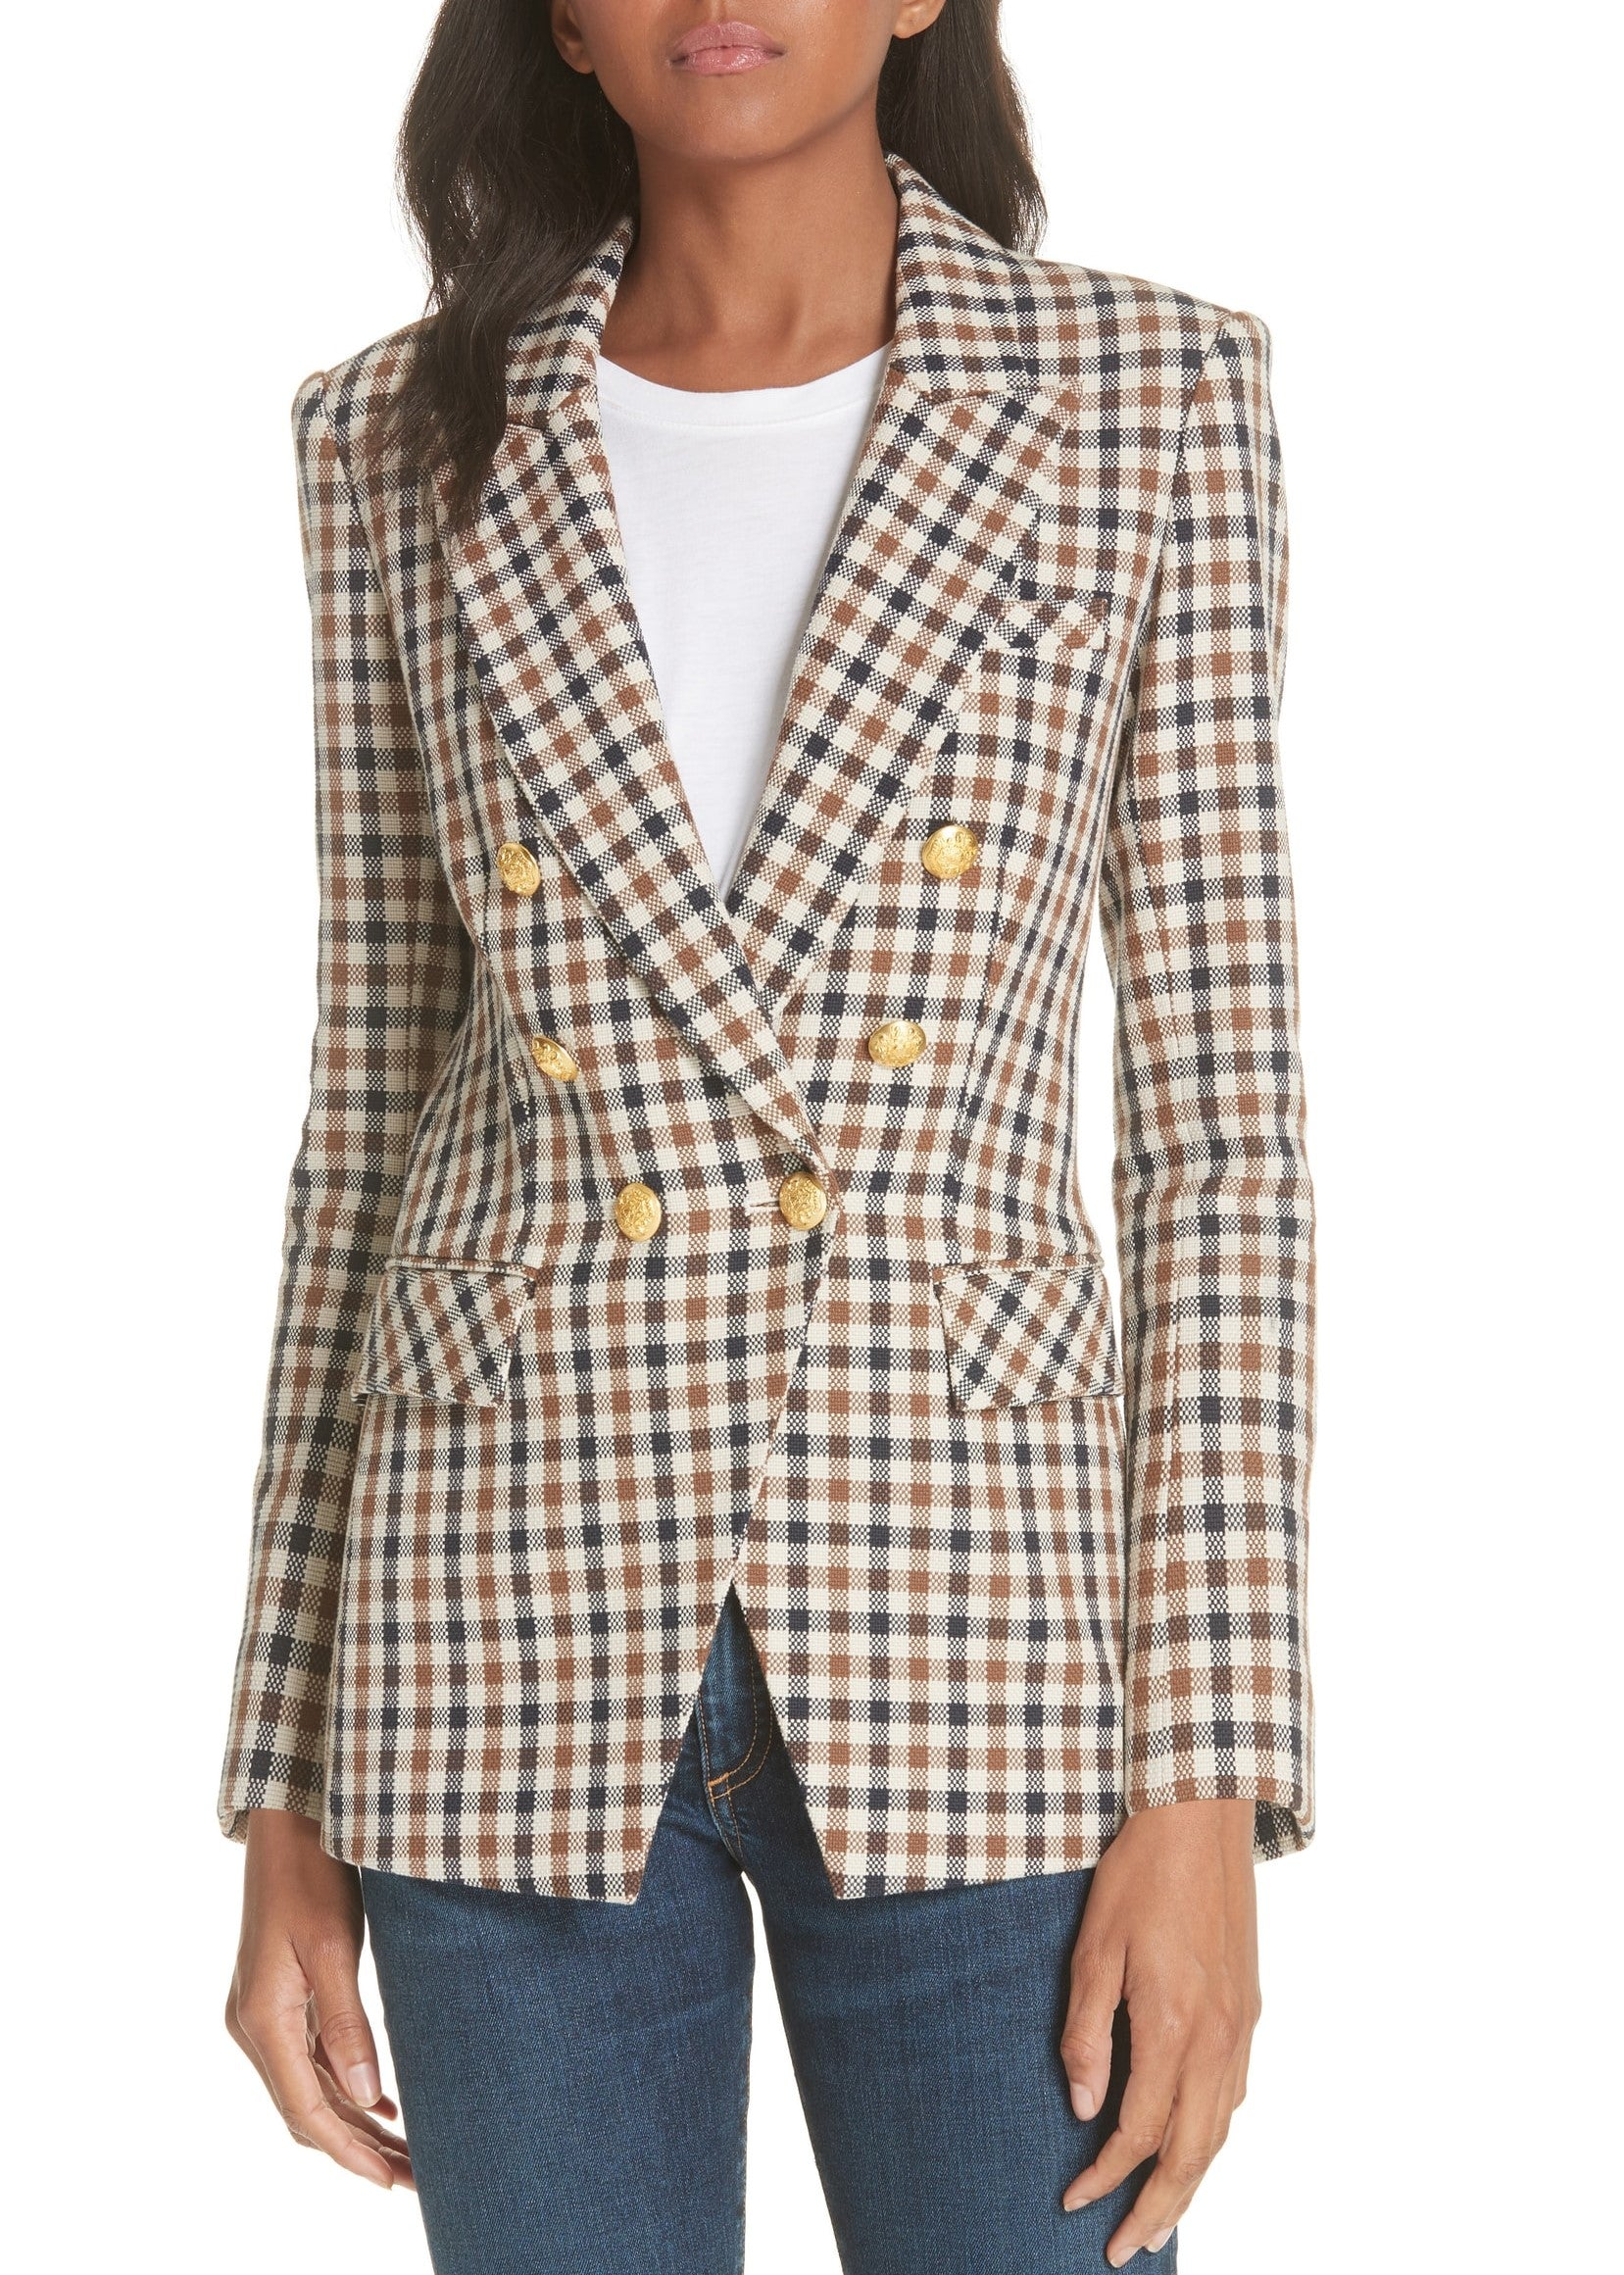 Veronica Beard Lonny dickey jacket in brown/navy